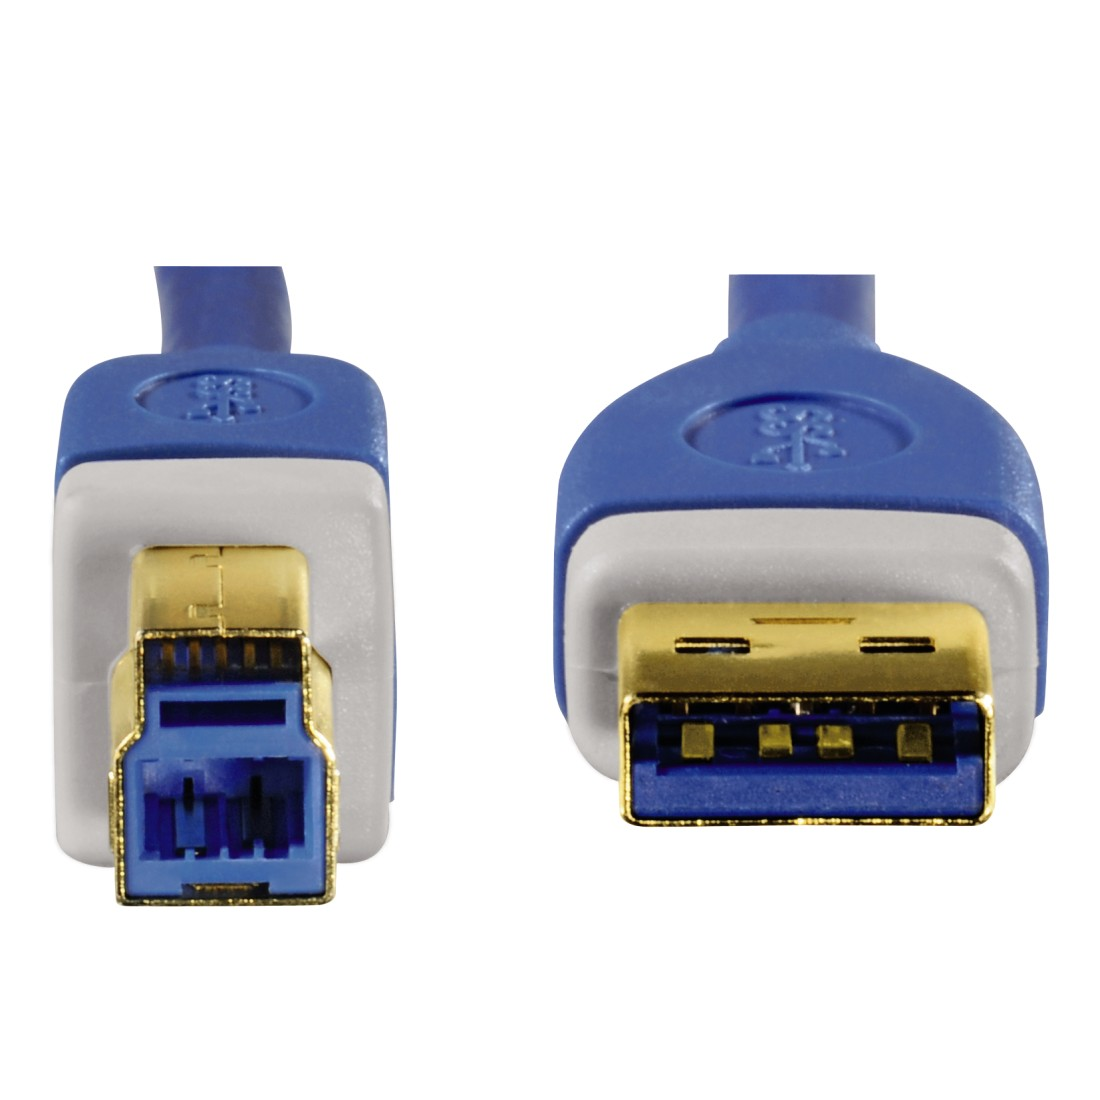 dex3 High-Res Detail 3 - Hama, USB 3.0 Cable, gold-plated, double shielded, 1.80 m